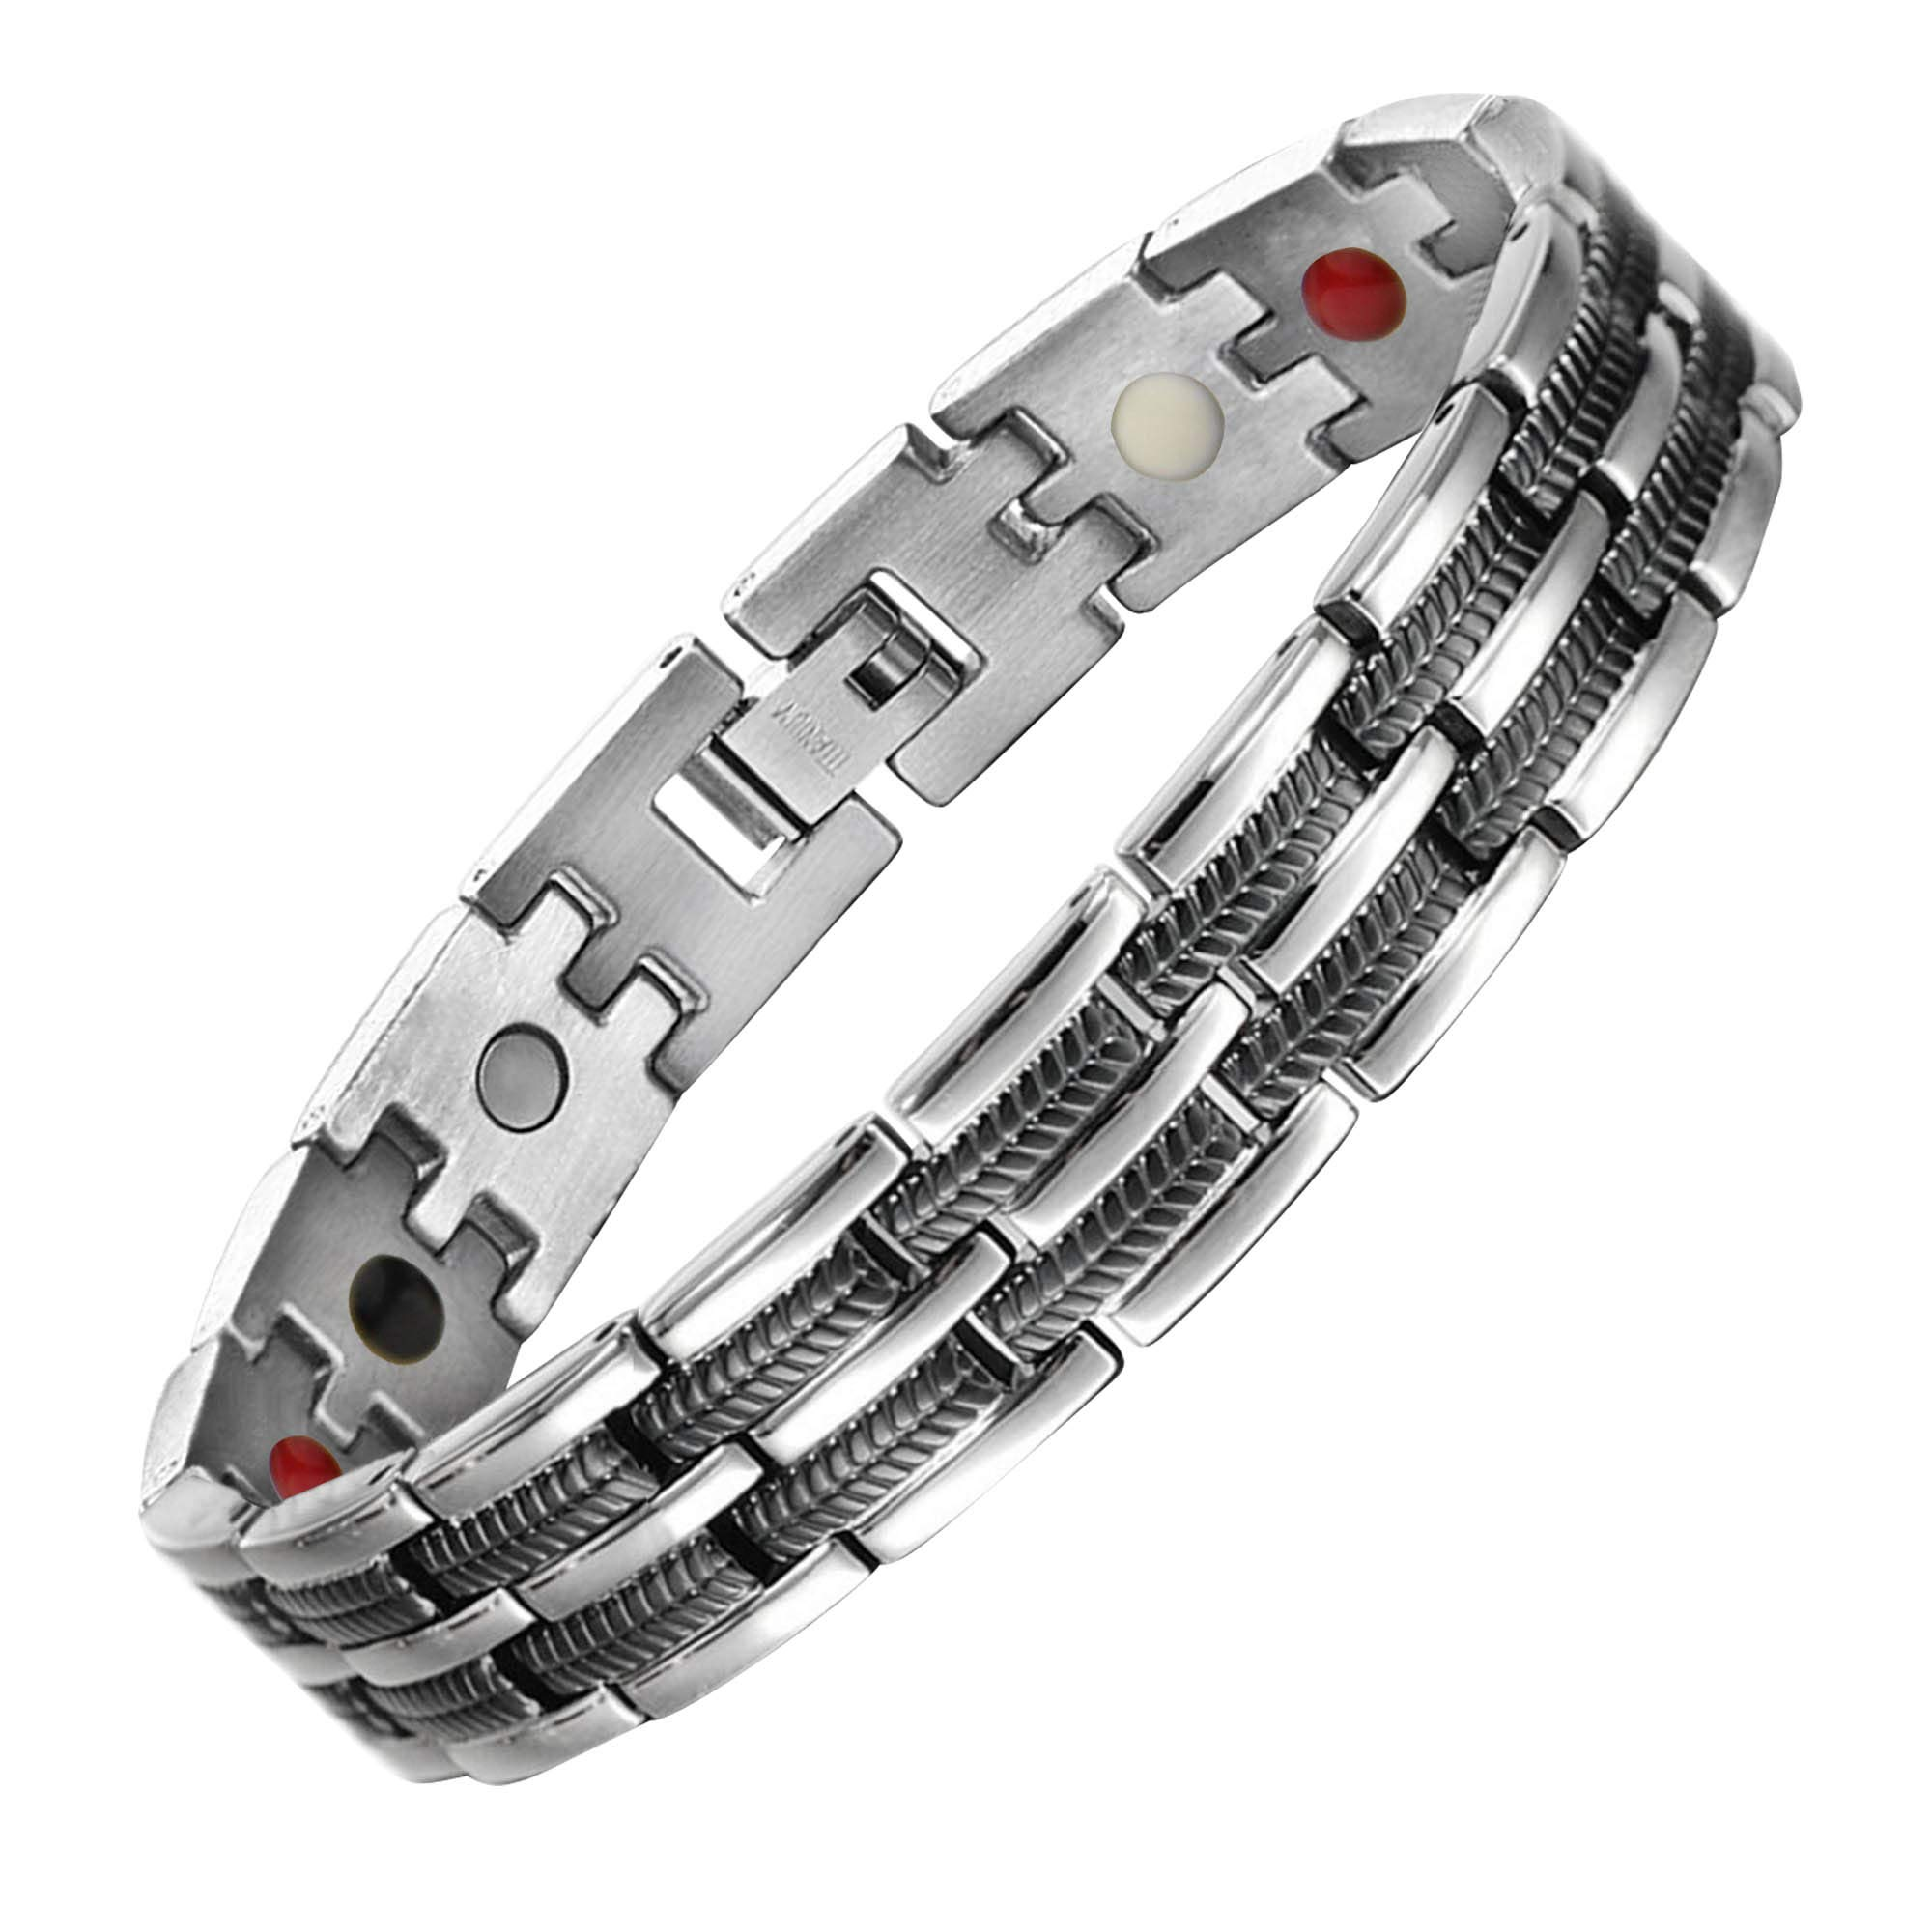 Titanium Bracelet for Men with Magnetic Therapy For Arthritis And Golfer Adjustable size to Fit Your Wrist